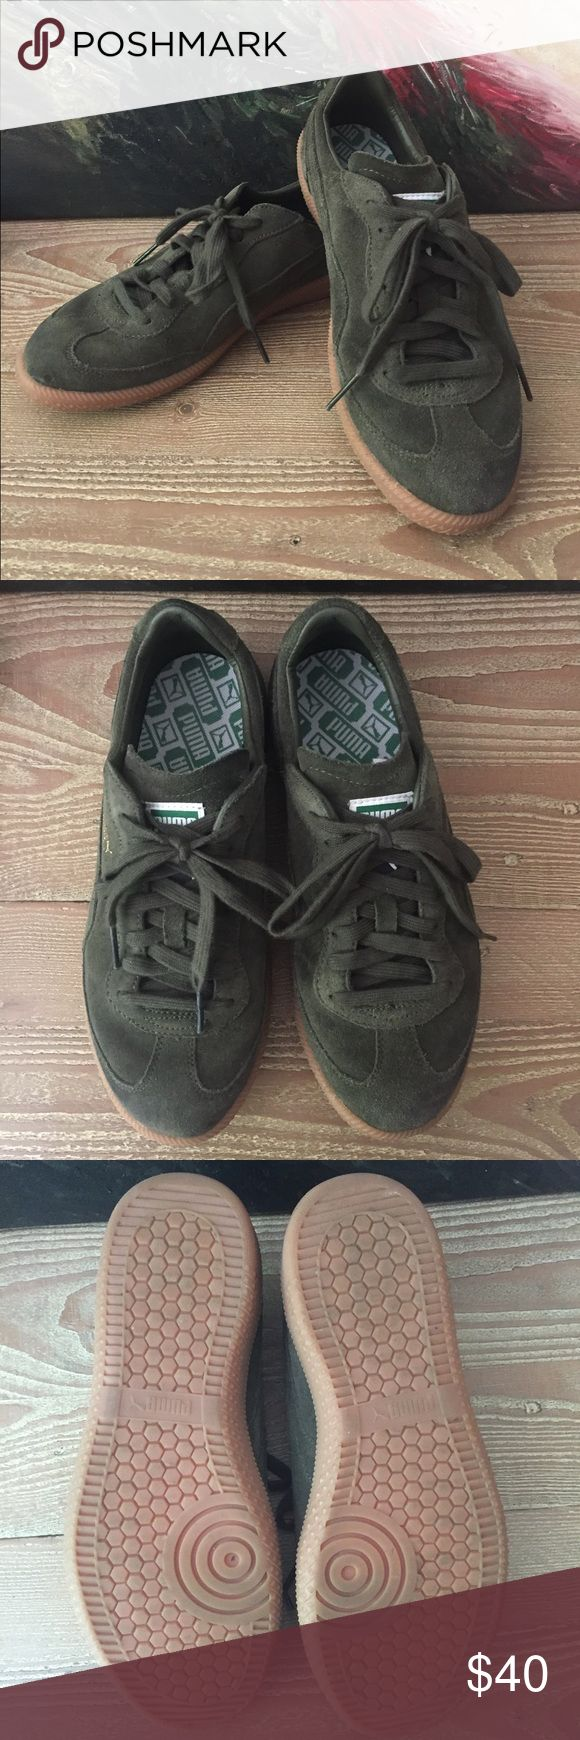 Green suede Pumas These are cool moss green Pumas from a vintage come-back line, meaning they're a remake of an old classic. Real suede upper. Only worn 2 times. Men's size 8 US, bought for myself and they fit a women's size 9. Puma Shoes Sneakers